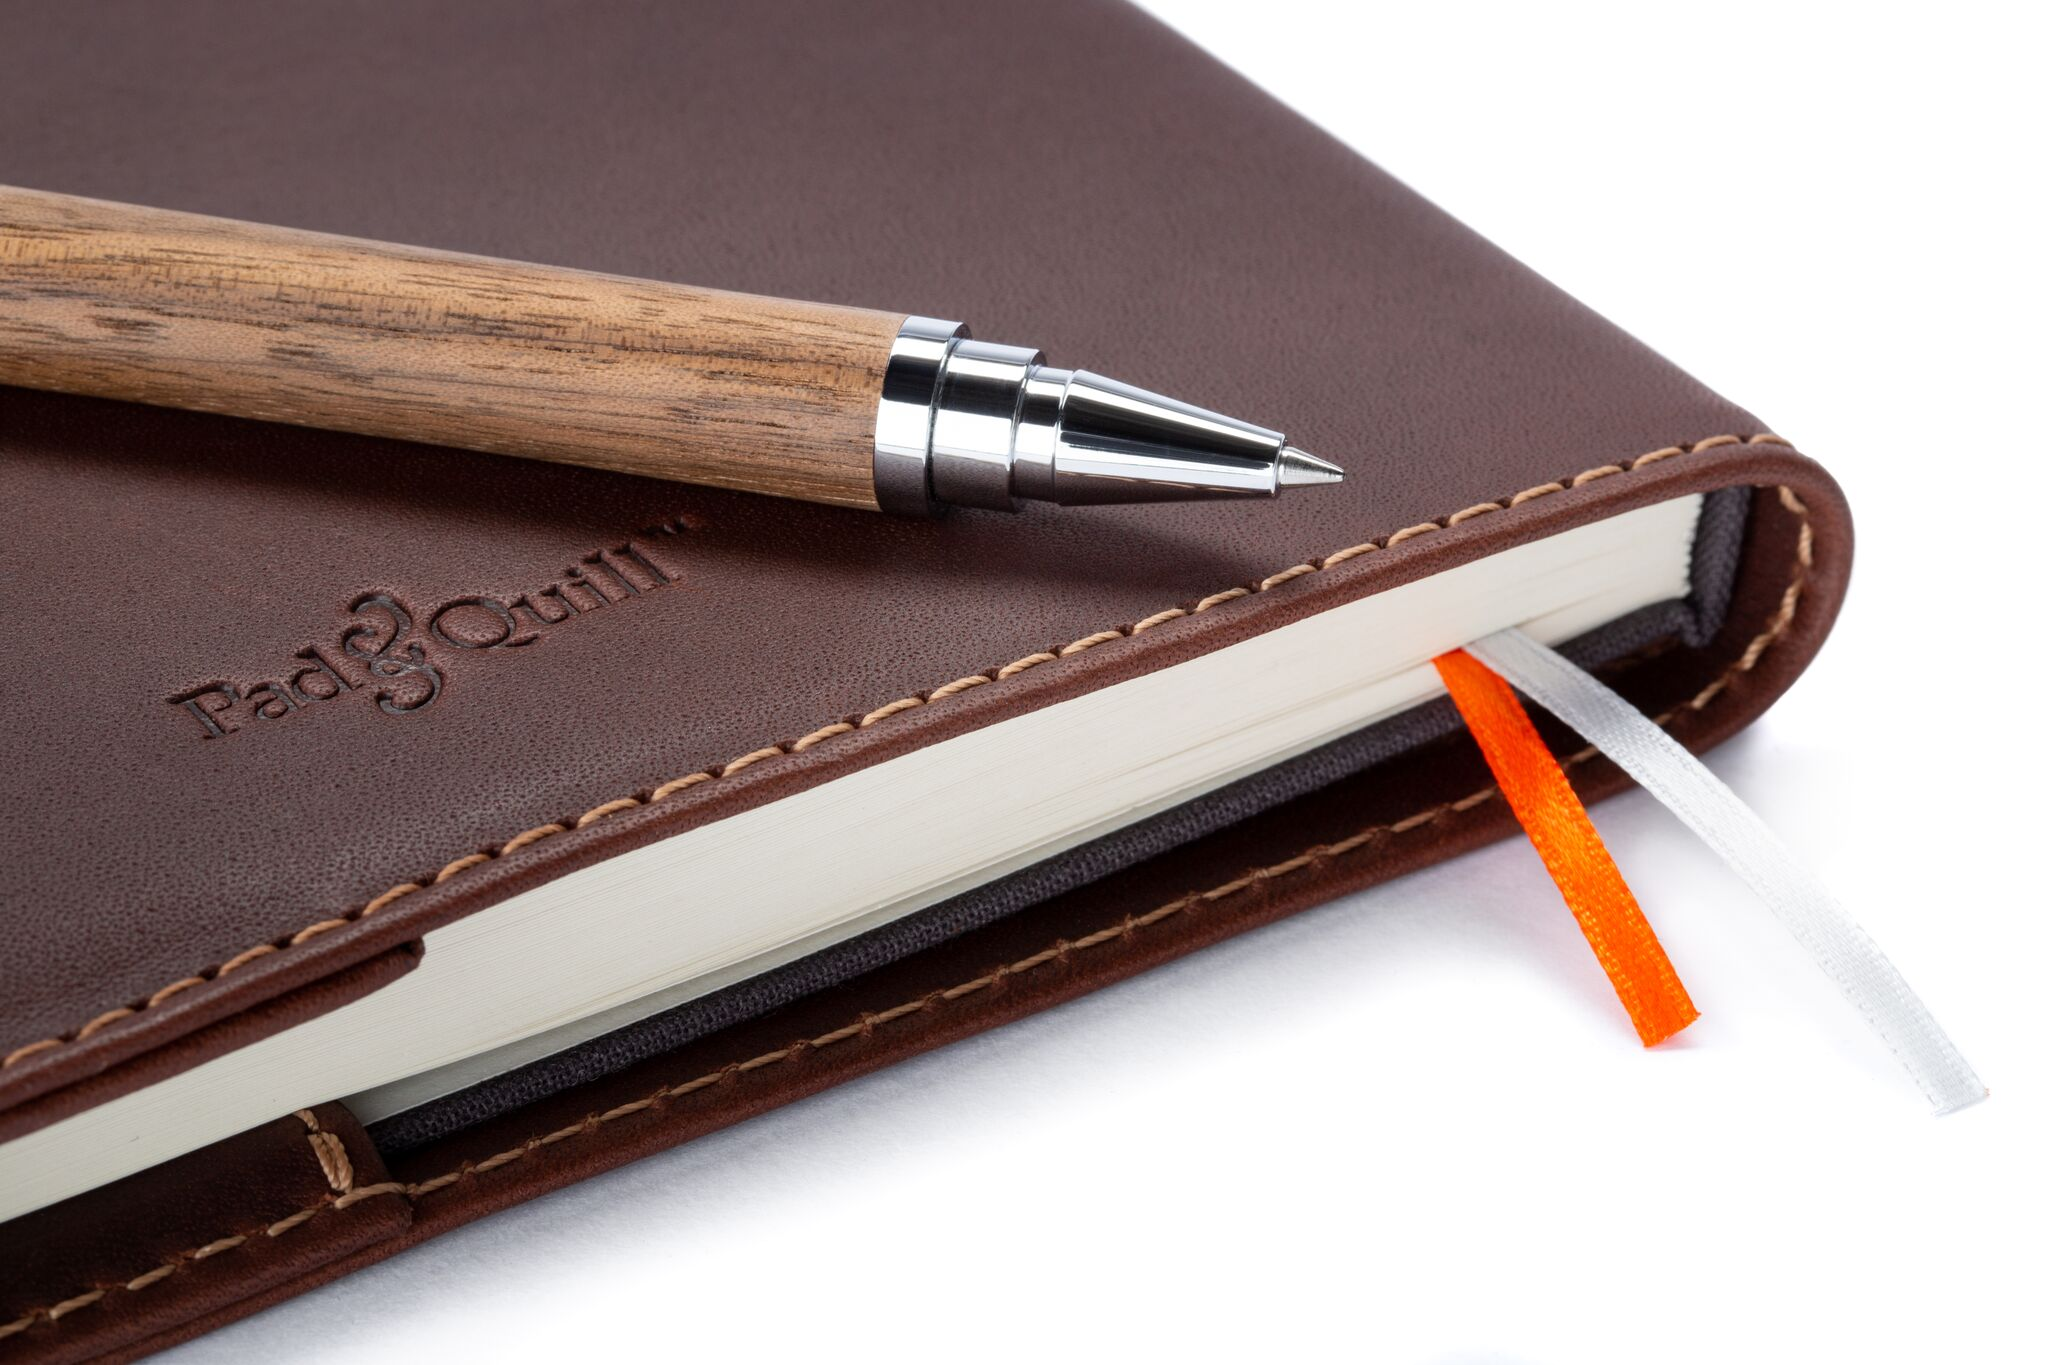 Pad & Quill Announces New Journal Notebooks and Quill Pens